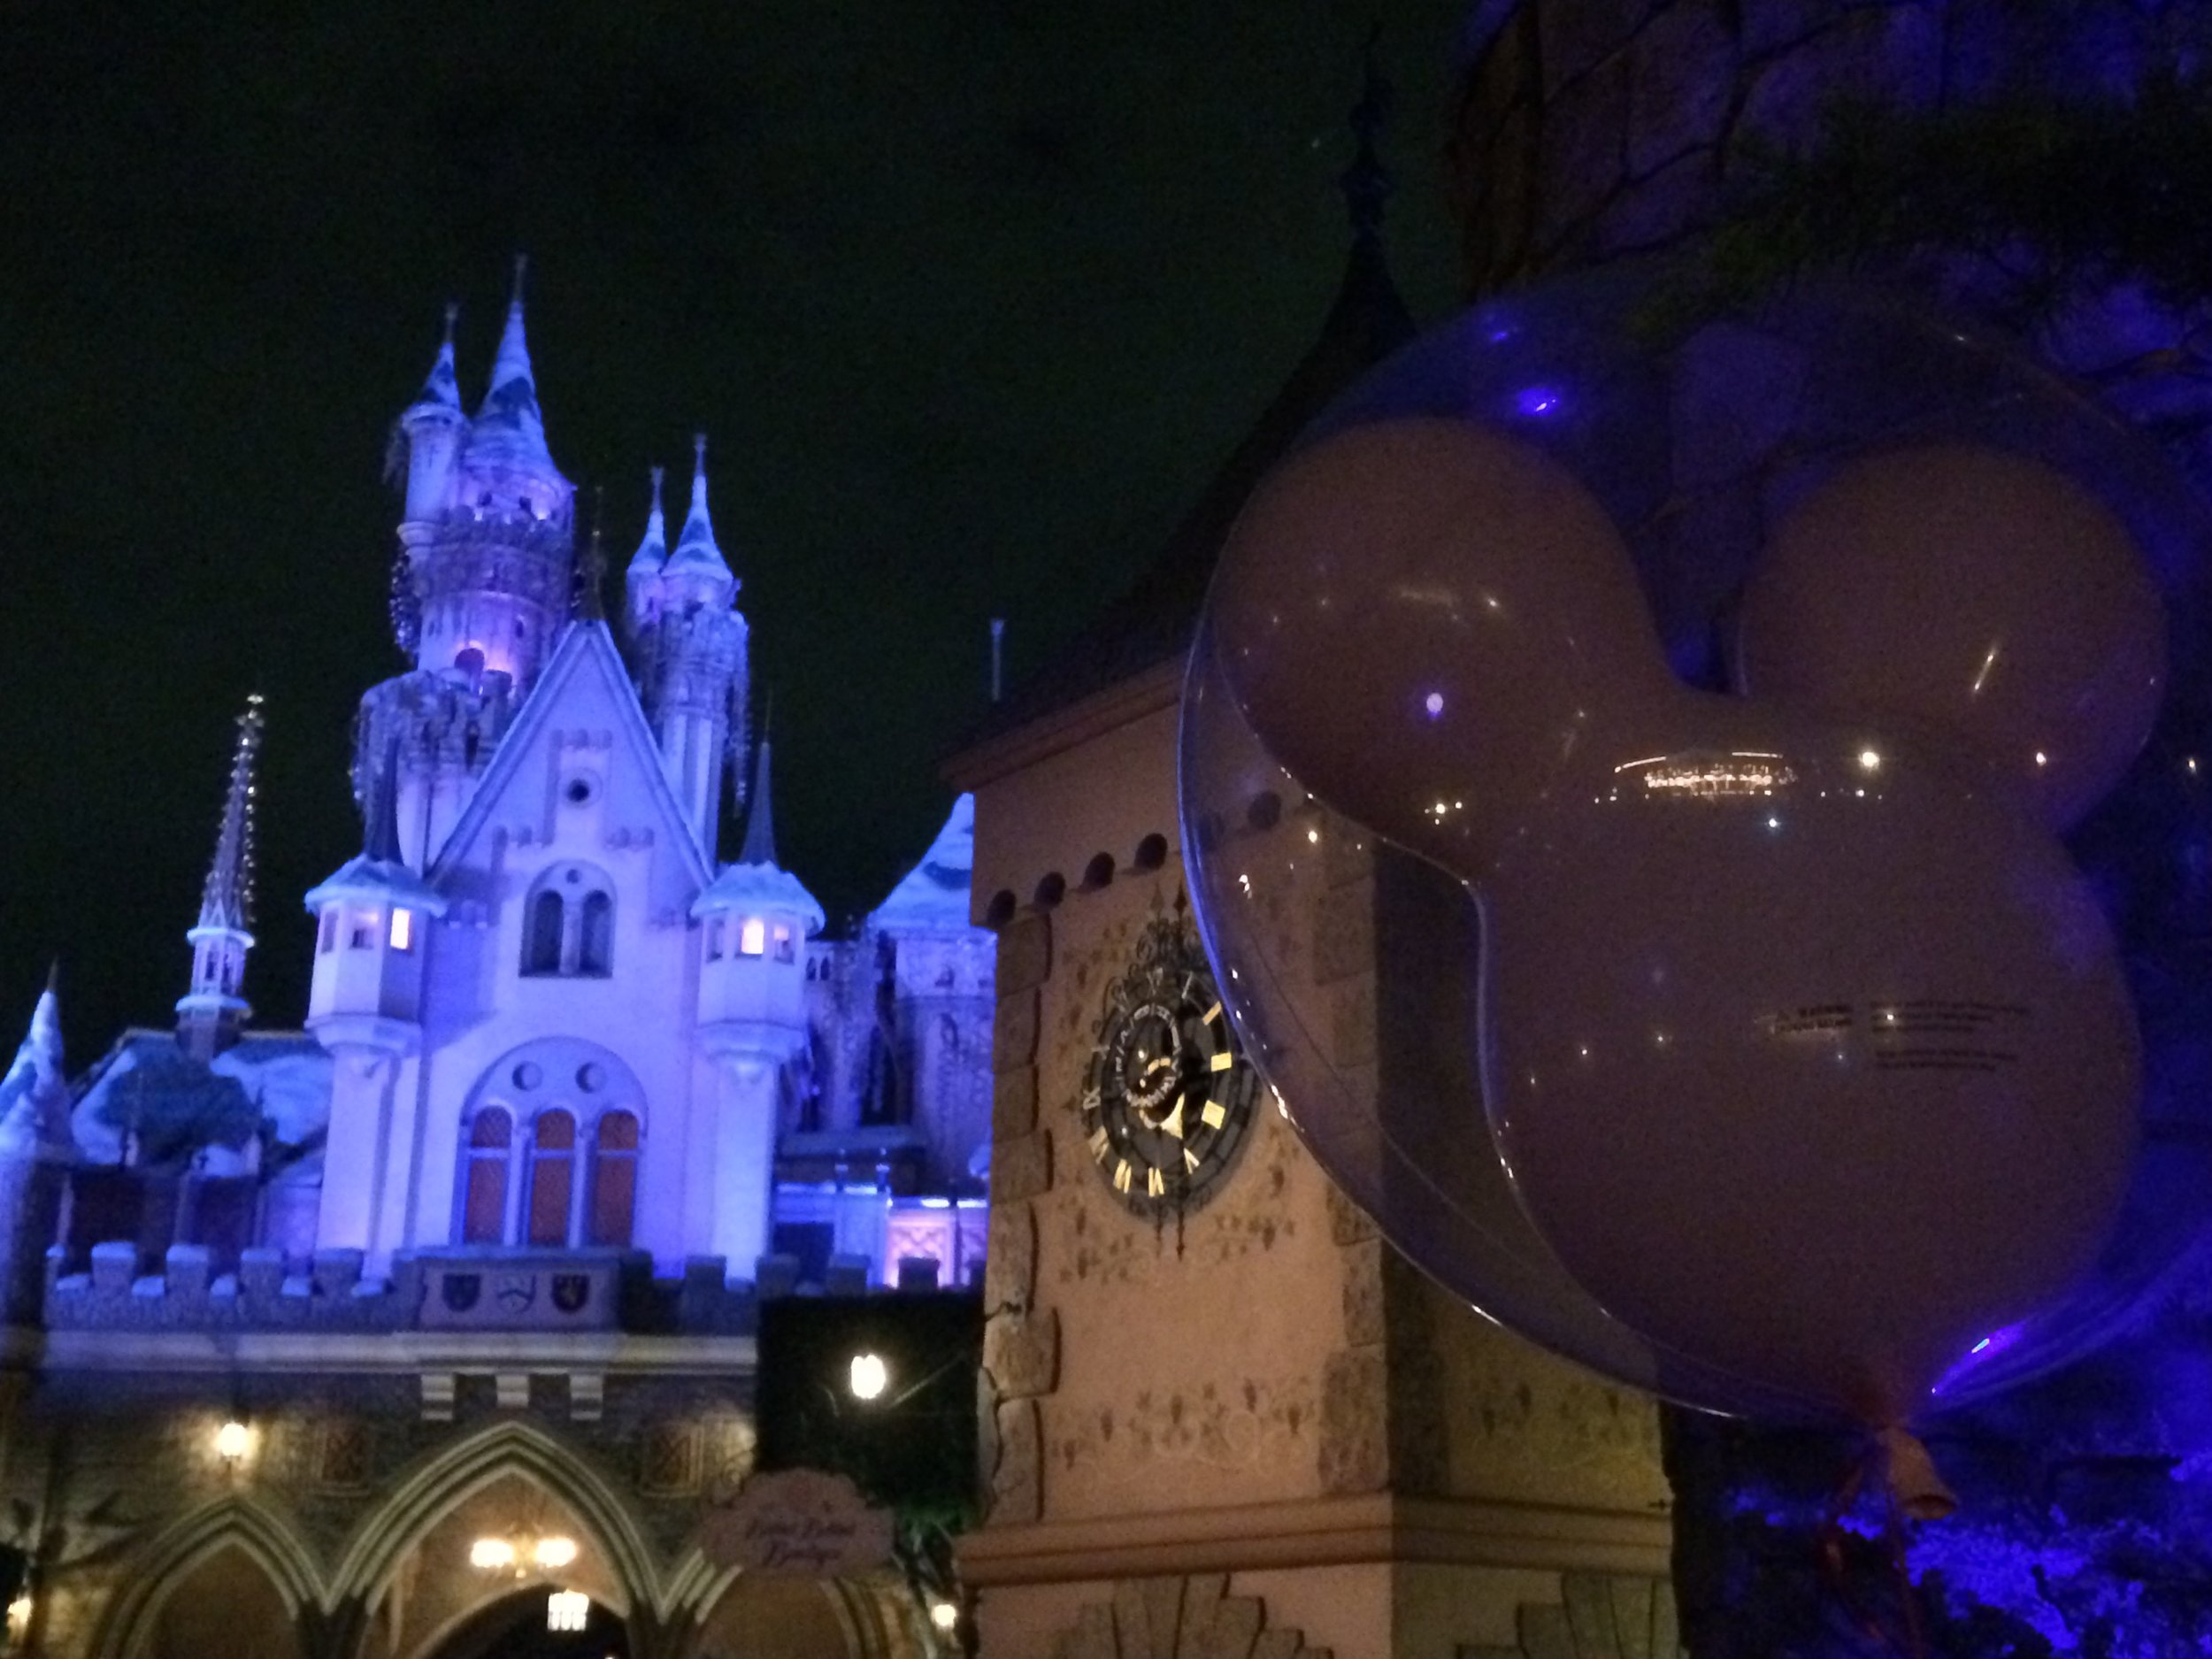 disneyland castle at night